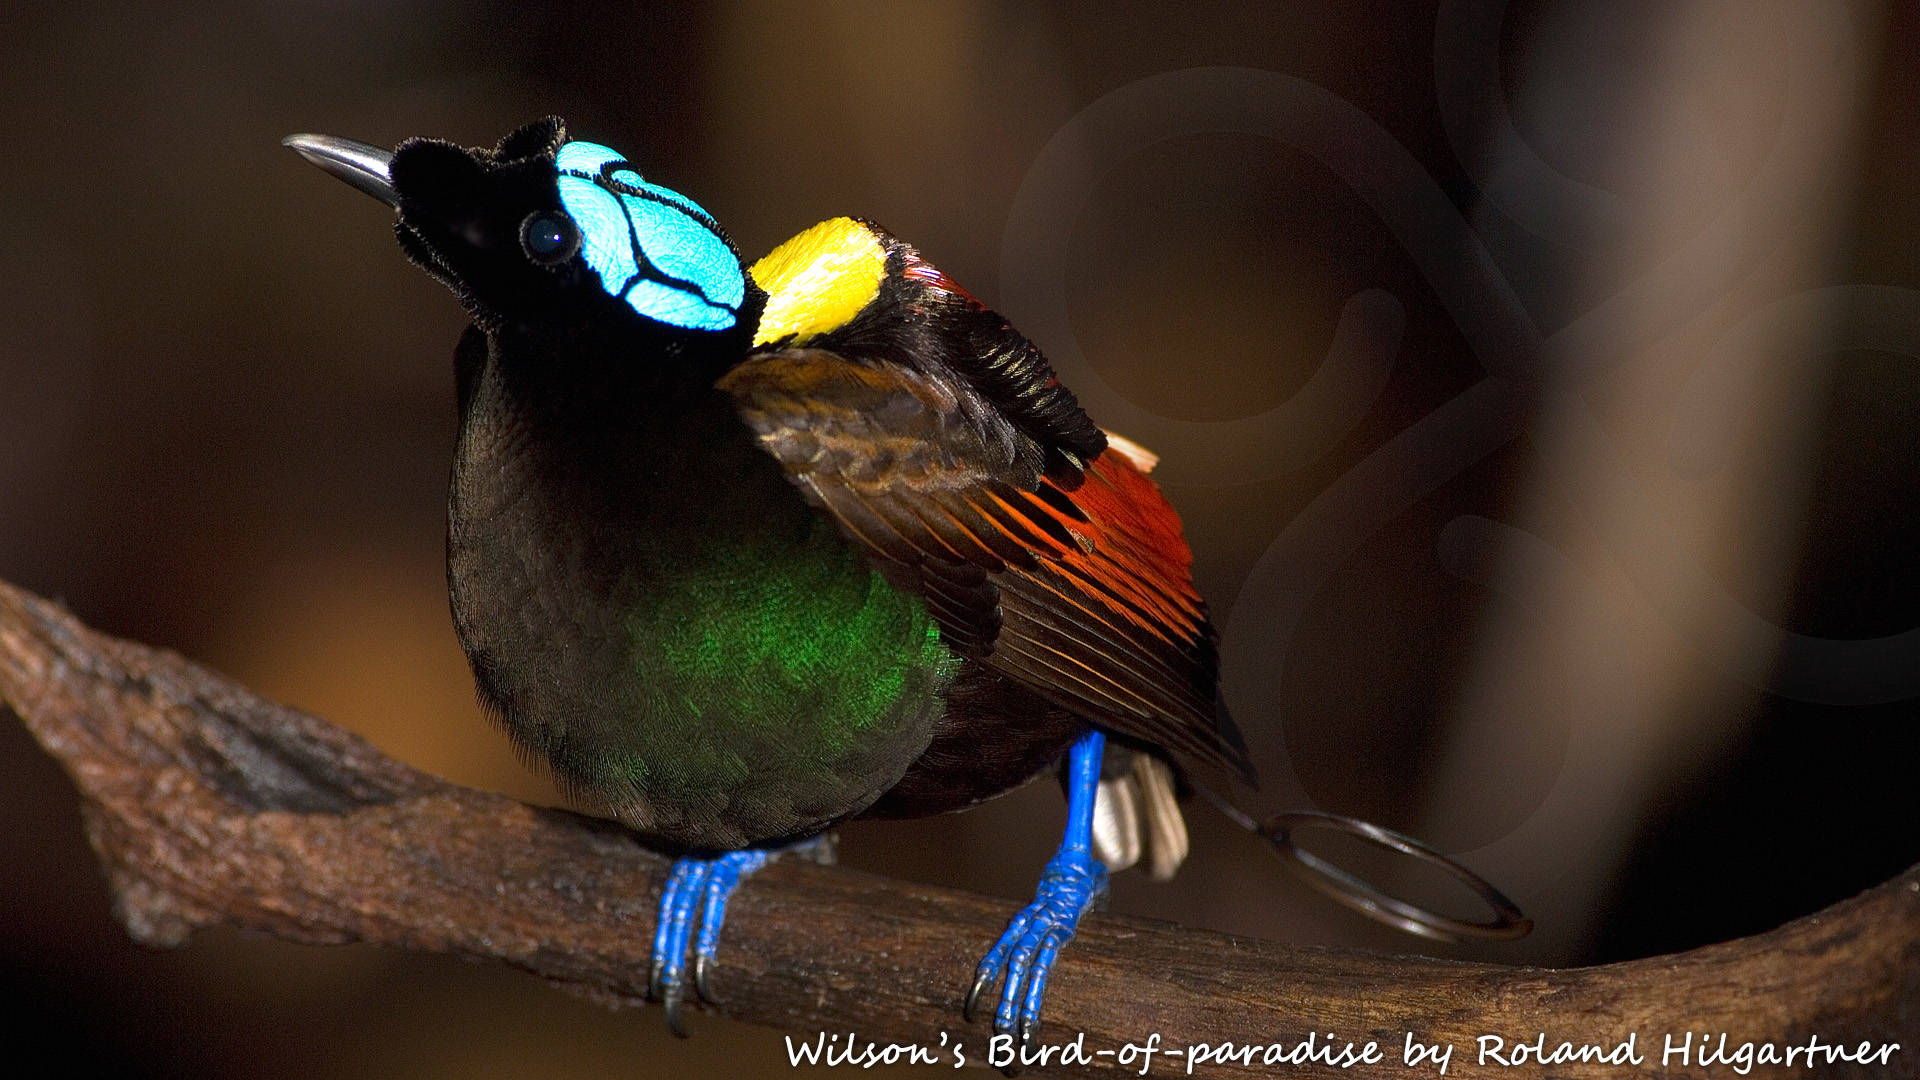 Perhaps every self-respecting world birder should at least once in a lifetime undertake the pilgrimage to the Wilson's Bird-of-paradise Diphyllodes respublica of Waigeo and Batanta in the fabled Raja Ampat or West Papuan Islands in eastern Indonesia. Copyright © Roland Hilgartner